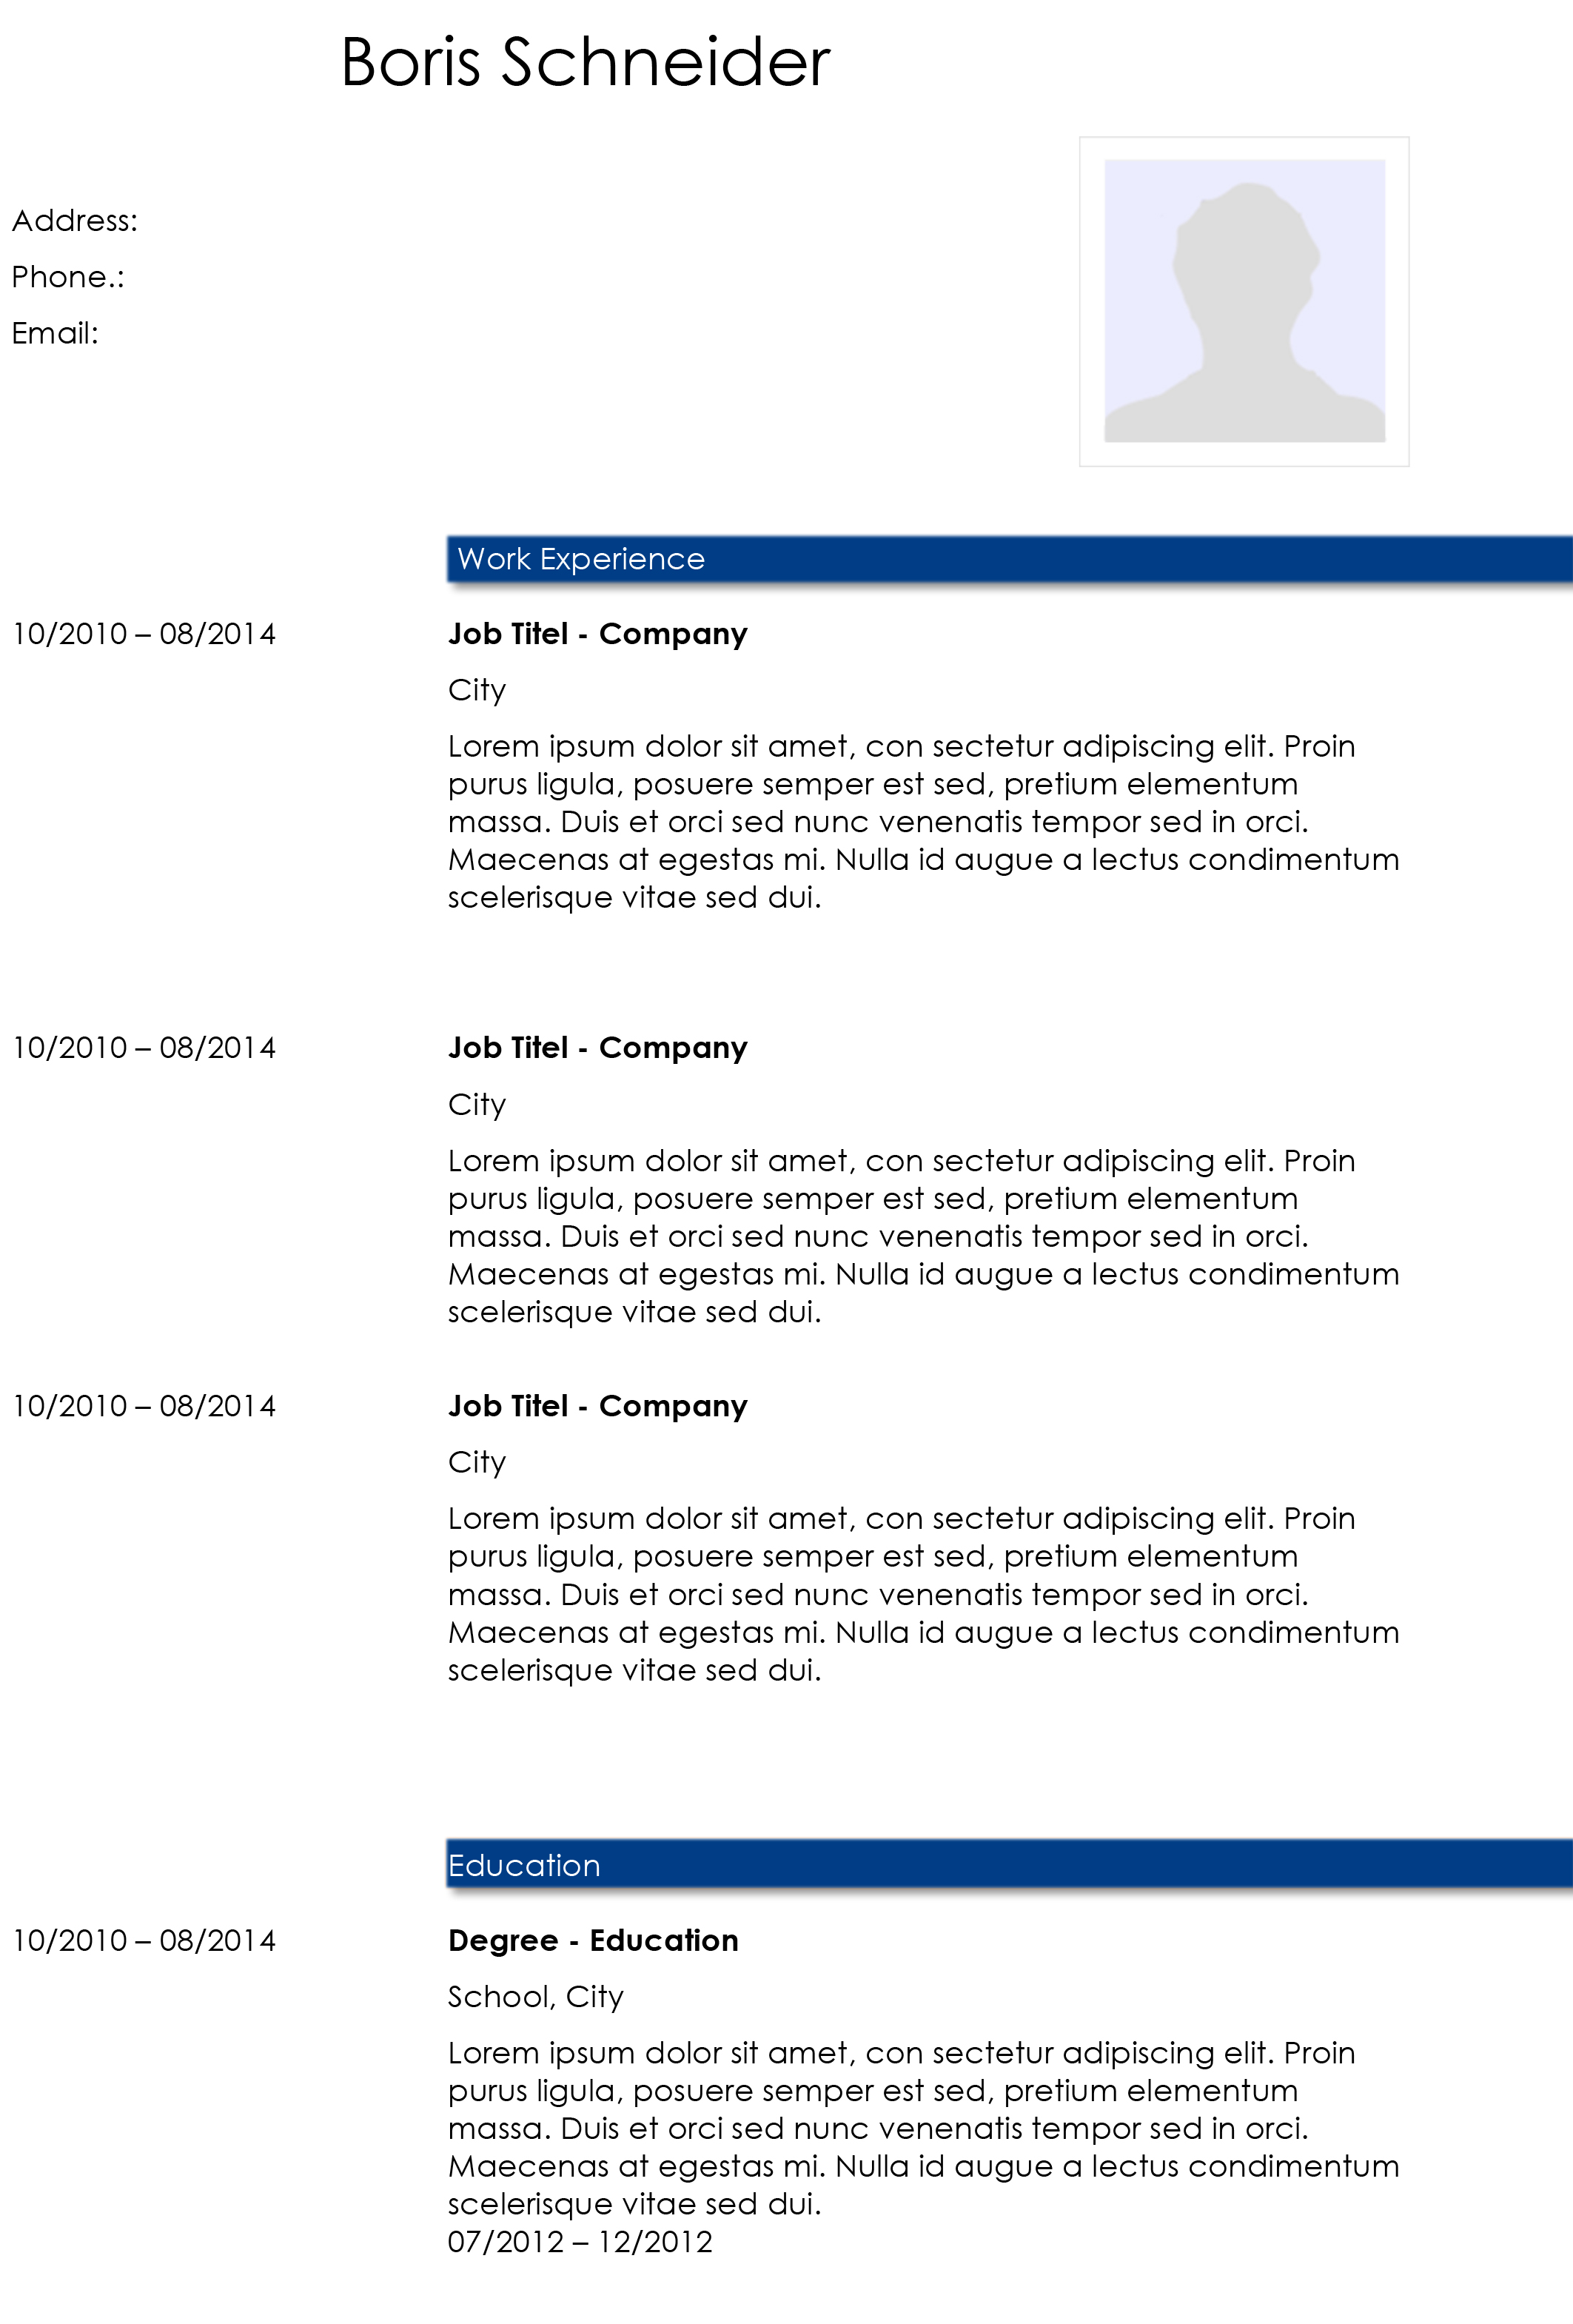 Academic Cv Template: Download This Word-template For Free